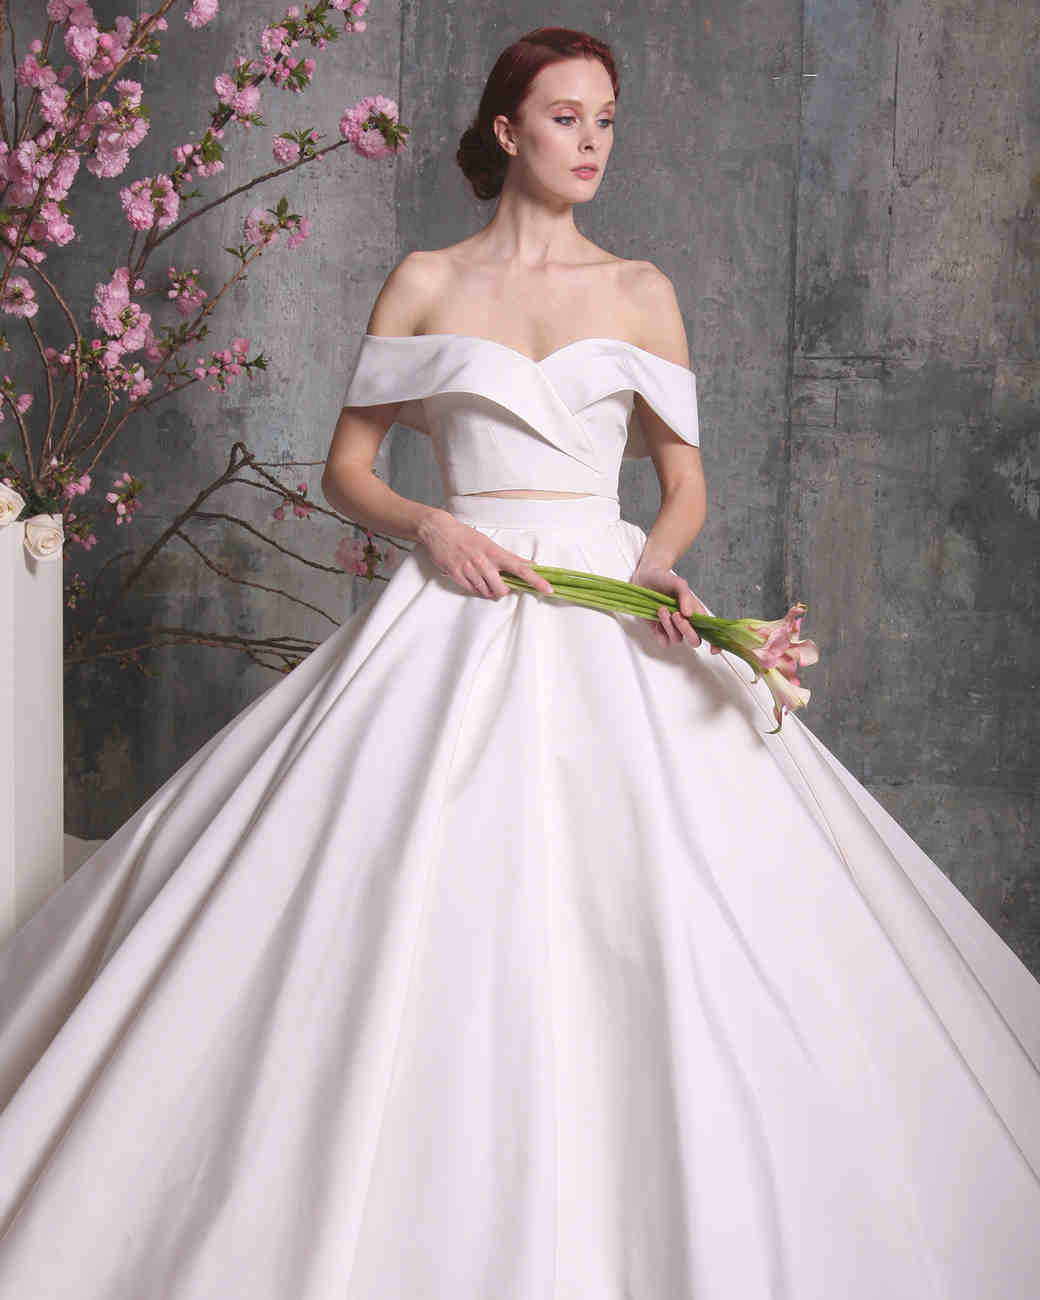 Springtime bridesmaid dresses gallery braidsmaid dress cocktail springtime wedding dresses fabulous best ideas about spring cheap twopiece wedding dresses martha stewart weddings with ombrellifo Image collections